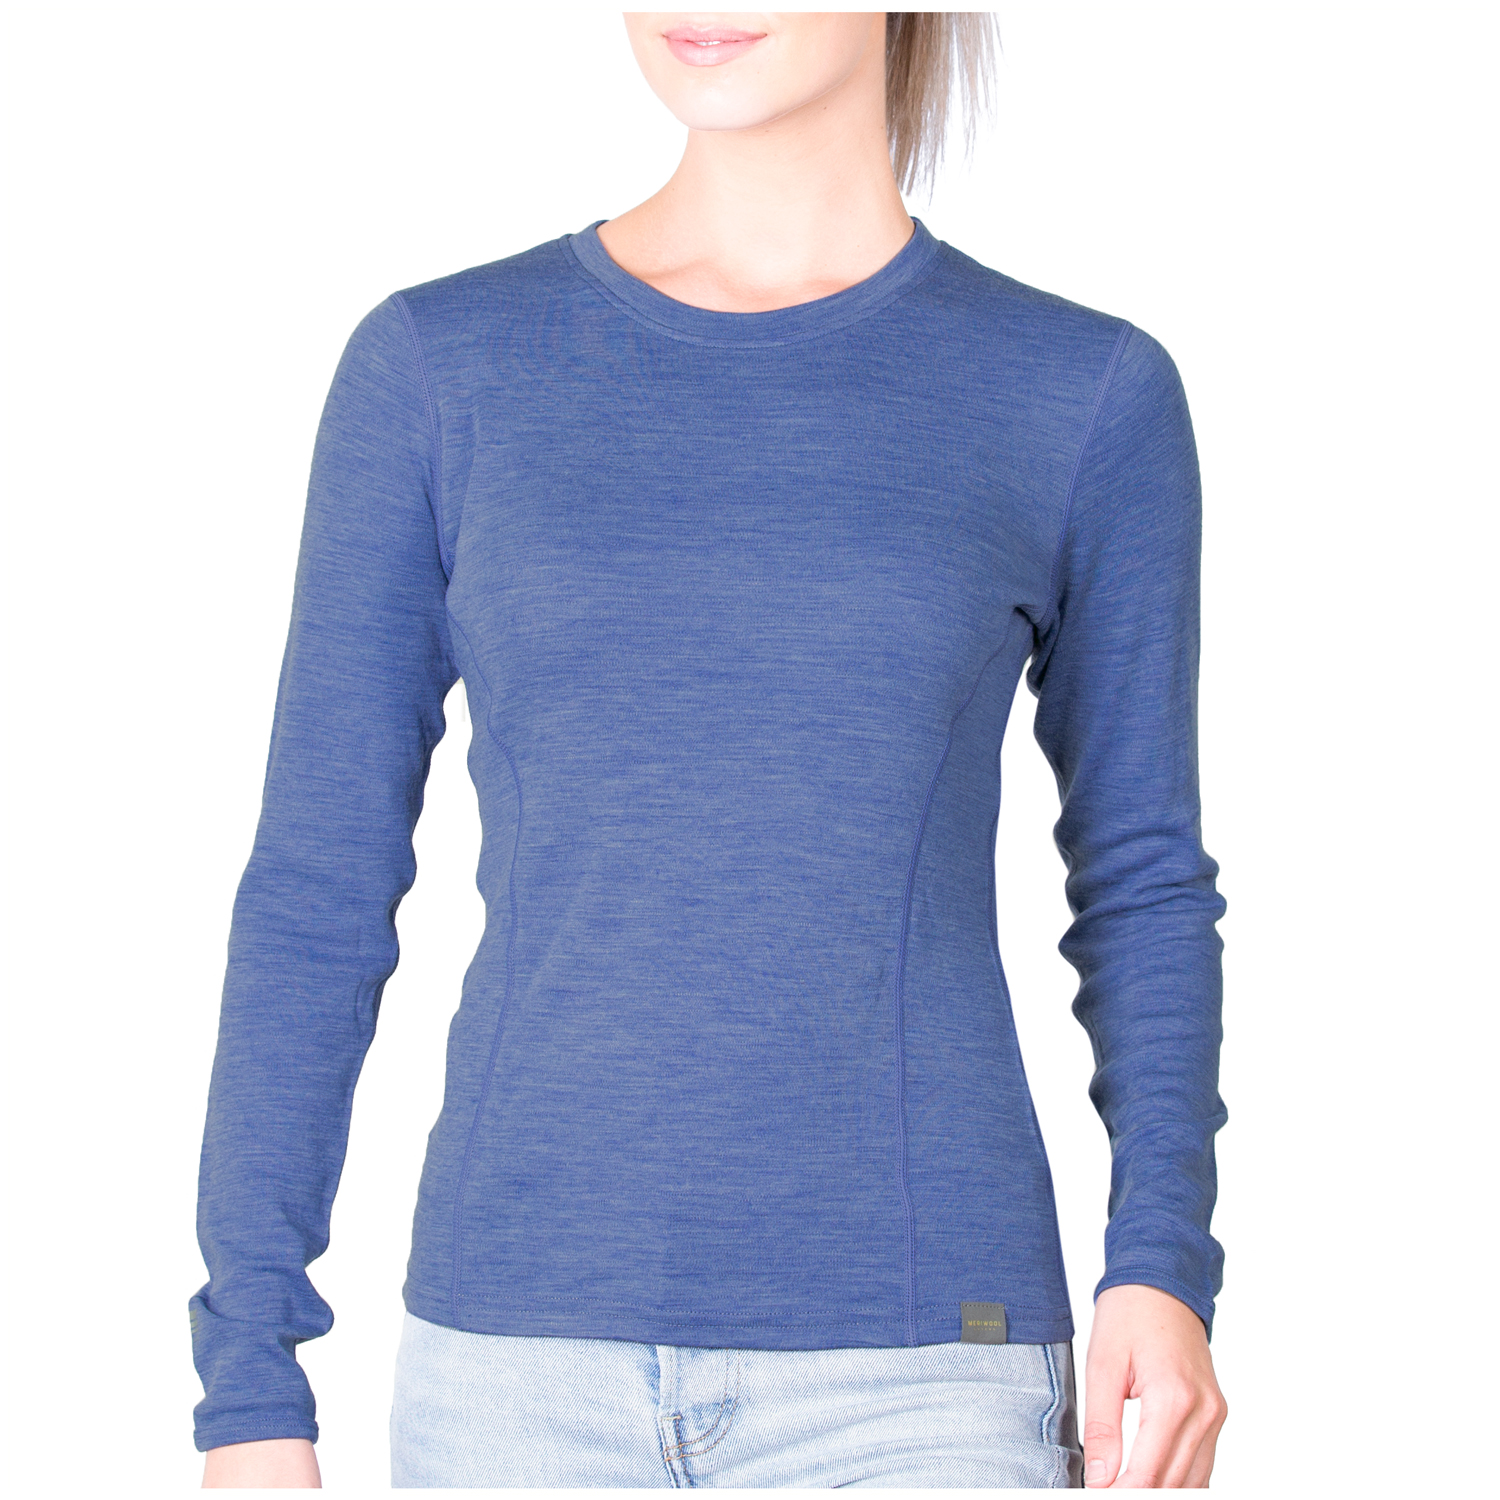 100/% Merino Wool T-Shirt for Womens Short Sleeve Base Layers Odor Resistance for Outdoor